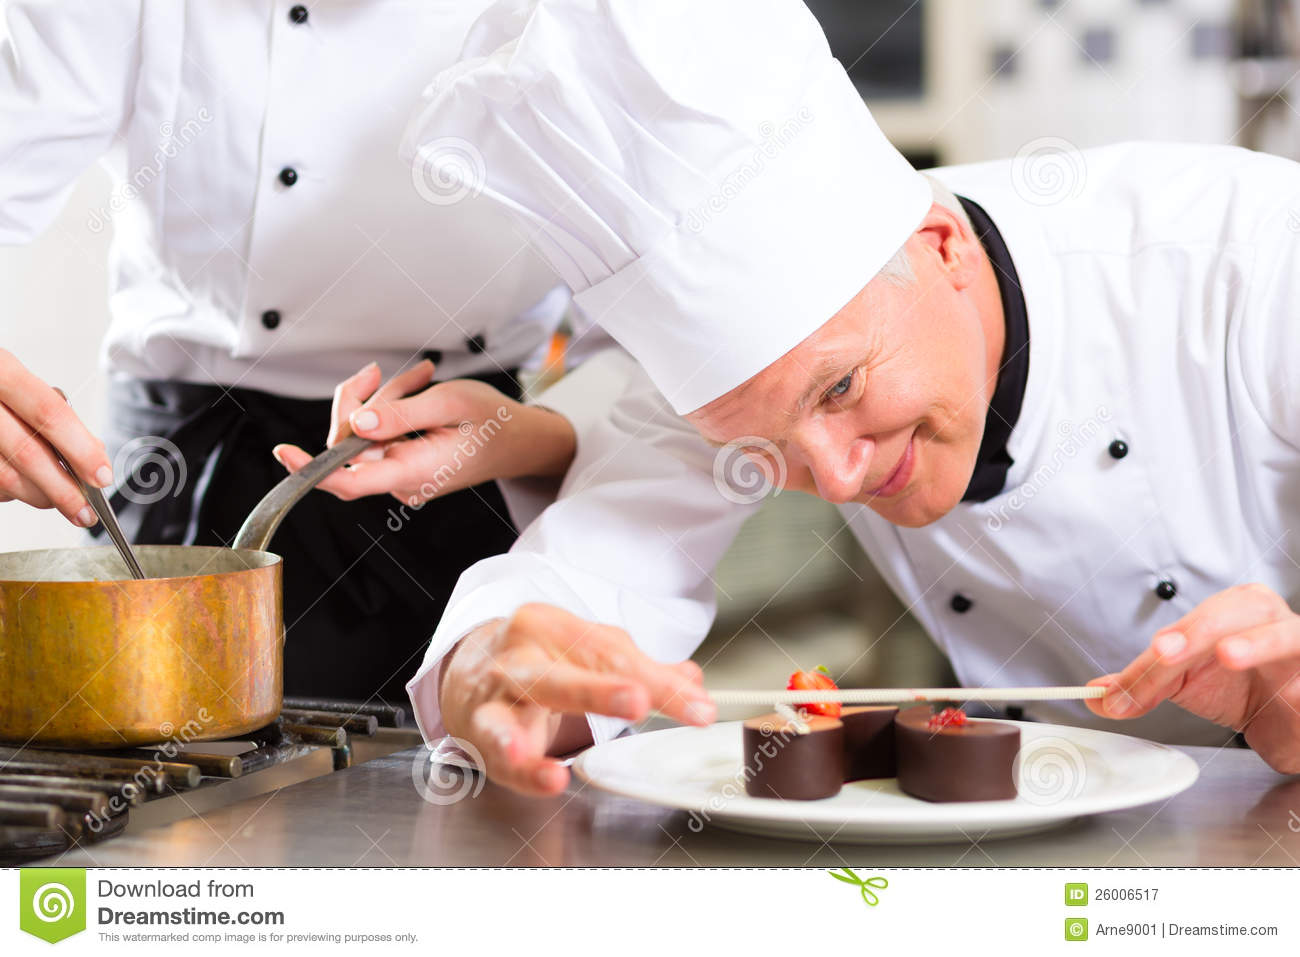 cook the pastry chef in hotel or restaurant kitchen cooking he is